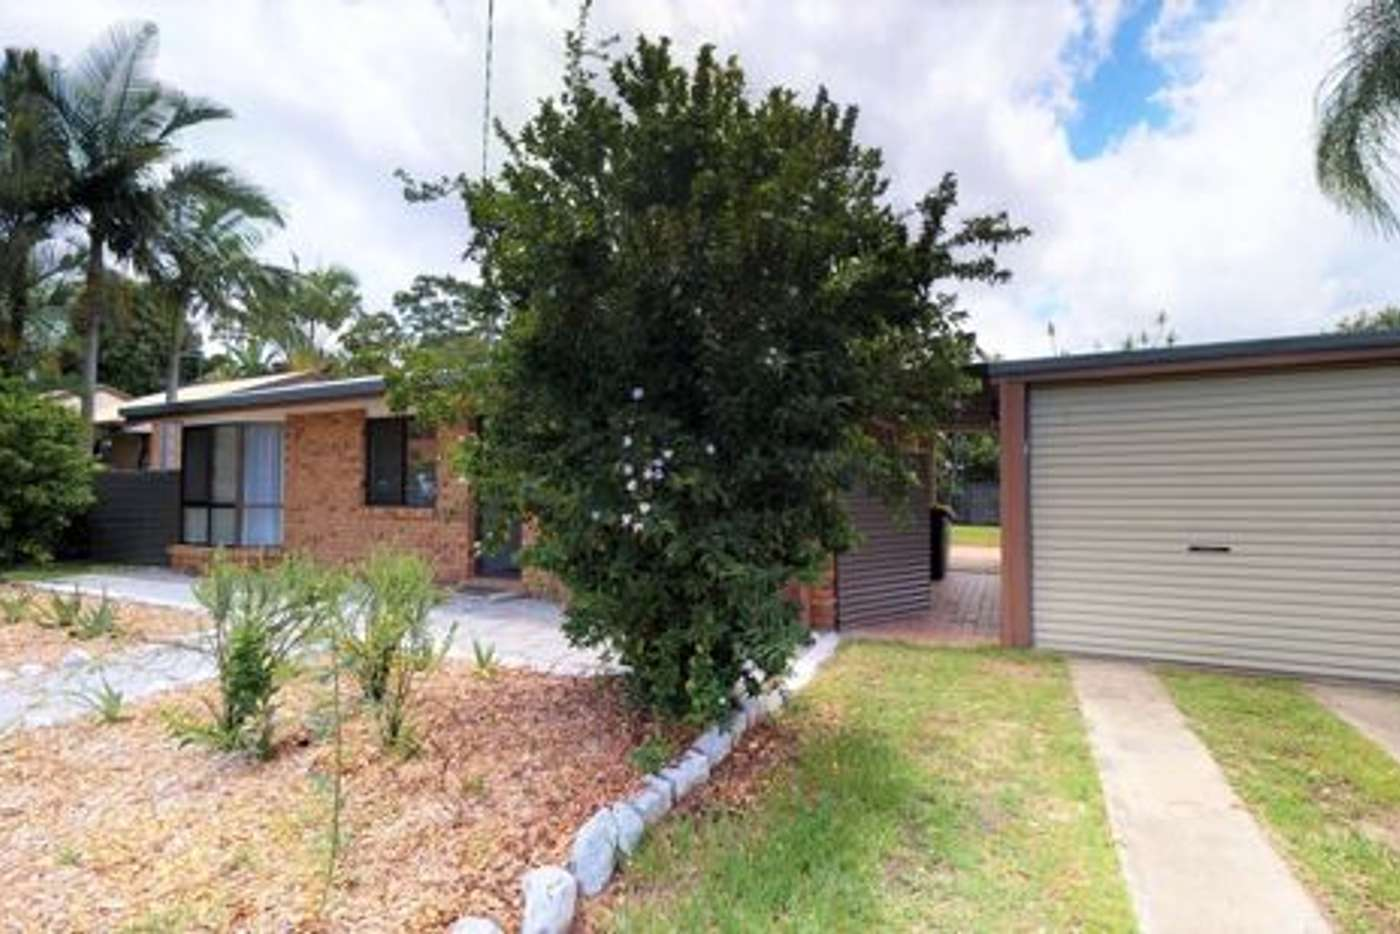 Main view of Homely house listing, 177 Toohey Street, Caboolture QLD 4510